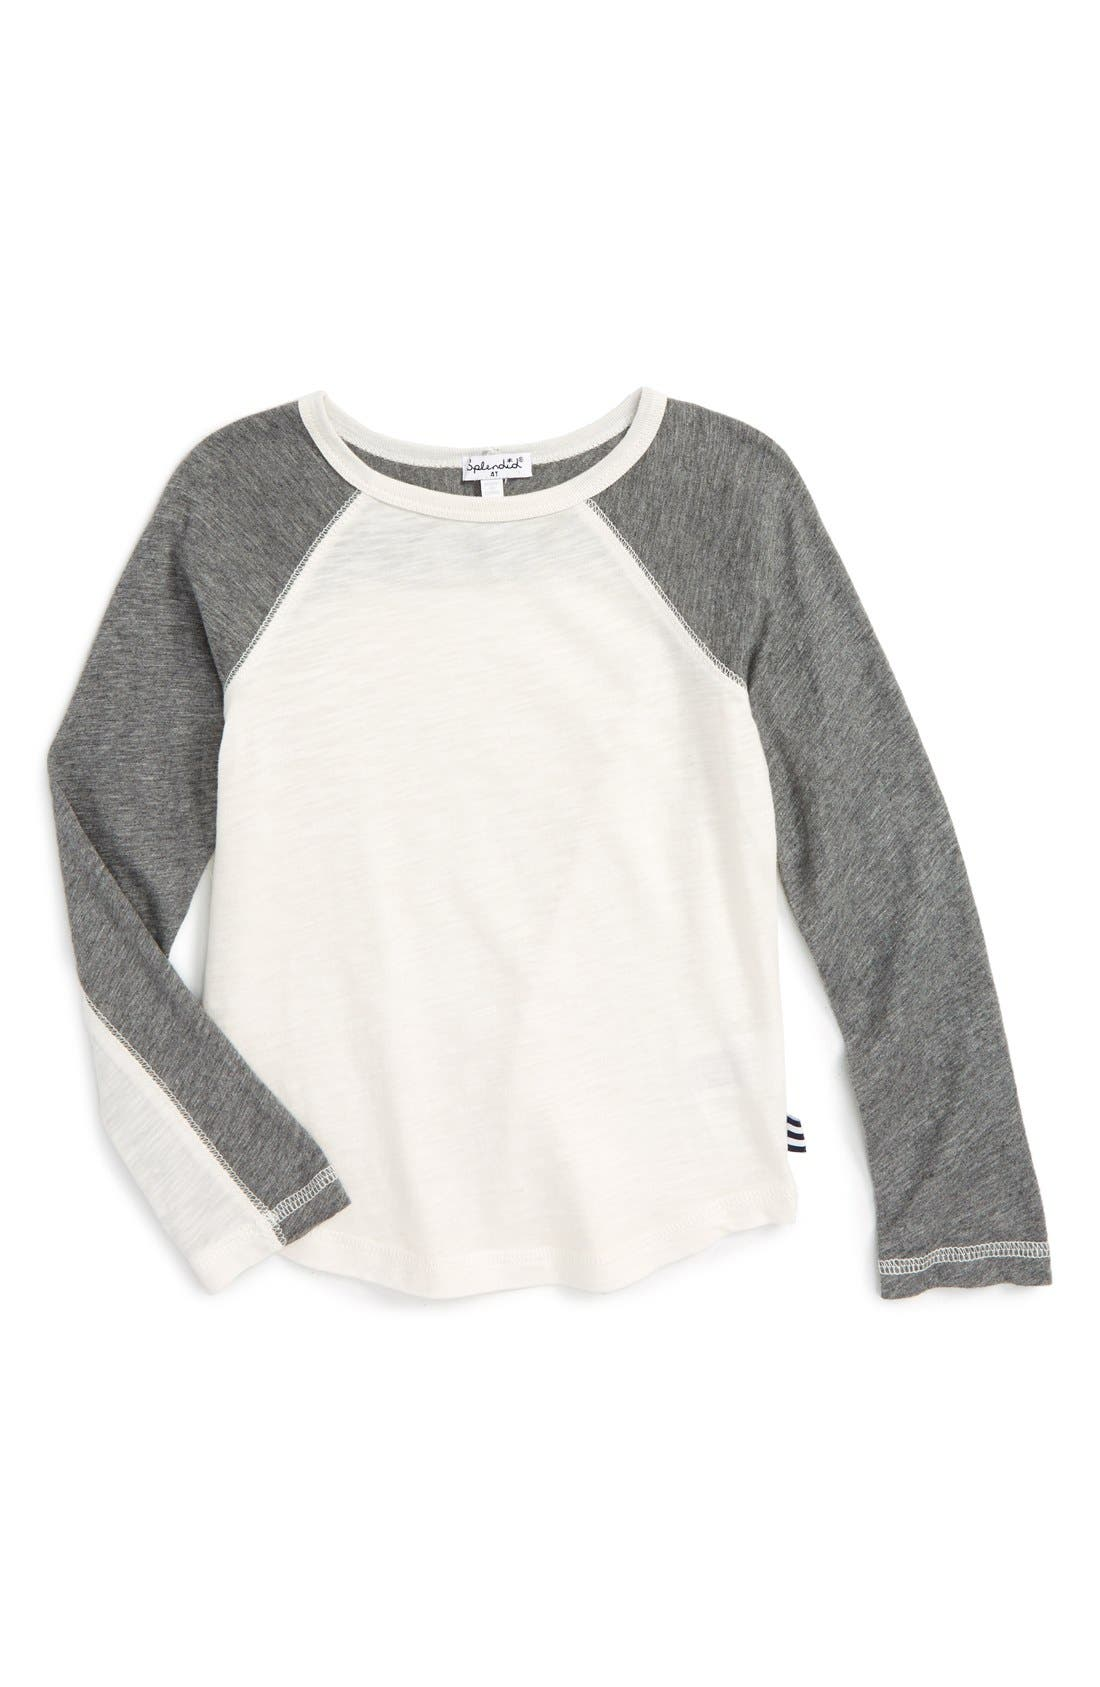 Splendid Slub Knit T-Shirt (Toddler Boys & Little Boys)